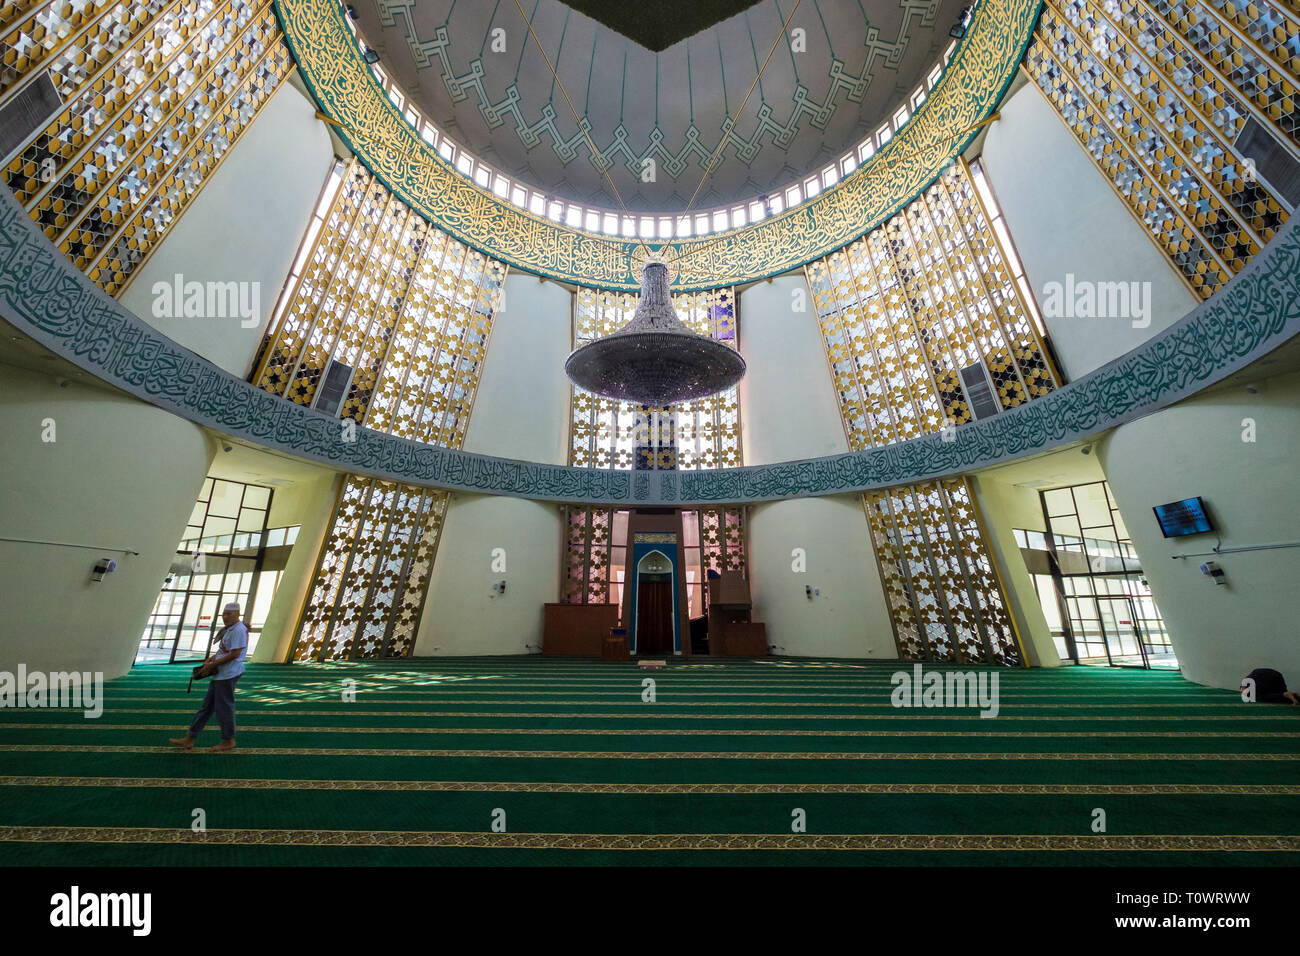 The Sabah State Mosque in Kota Kinabalu, Sabah, Borneo, Malaysia. Interior view of the large, round space. - Stock Image